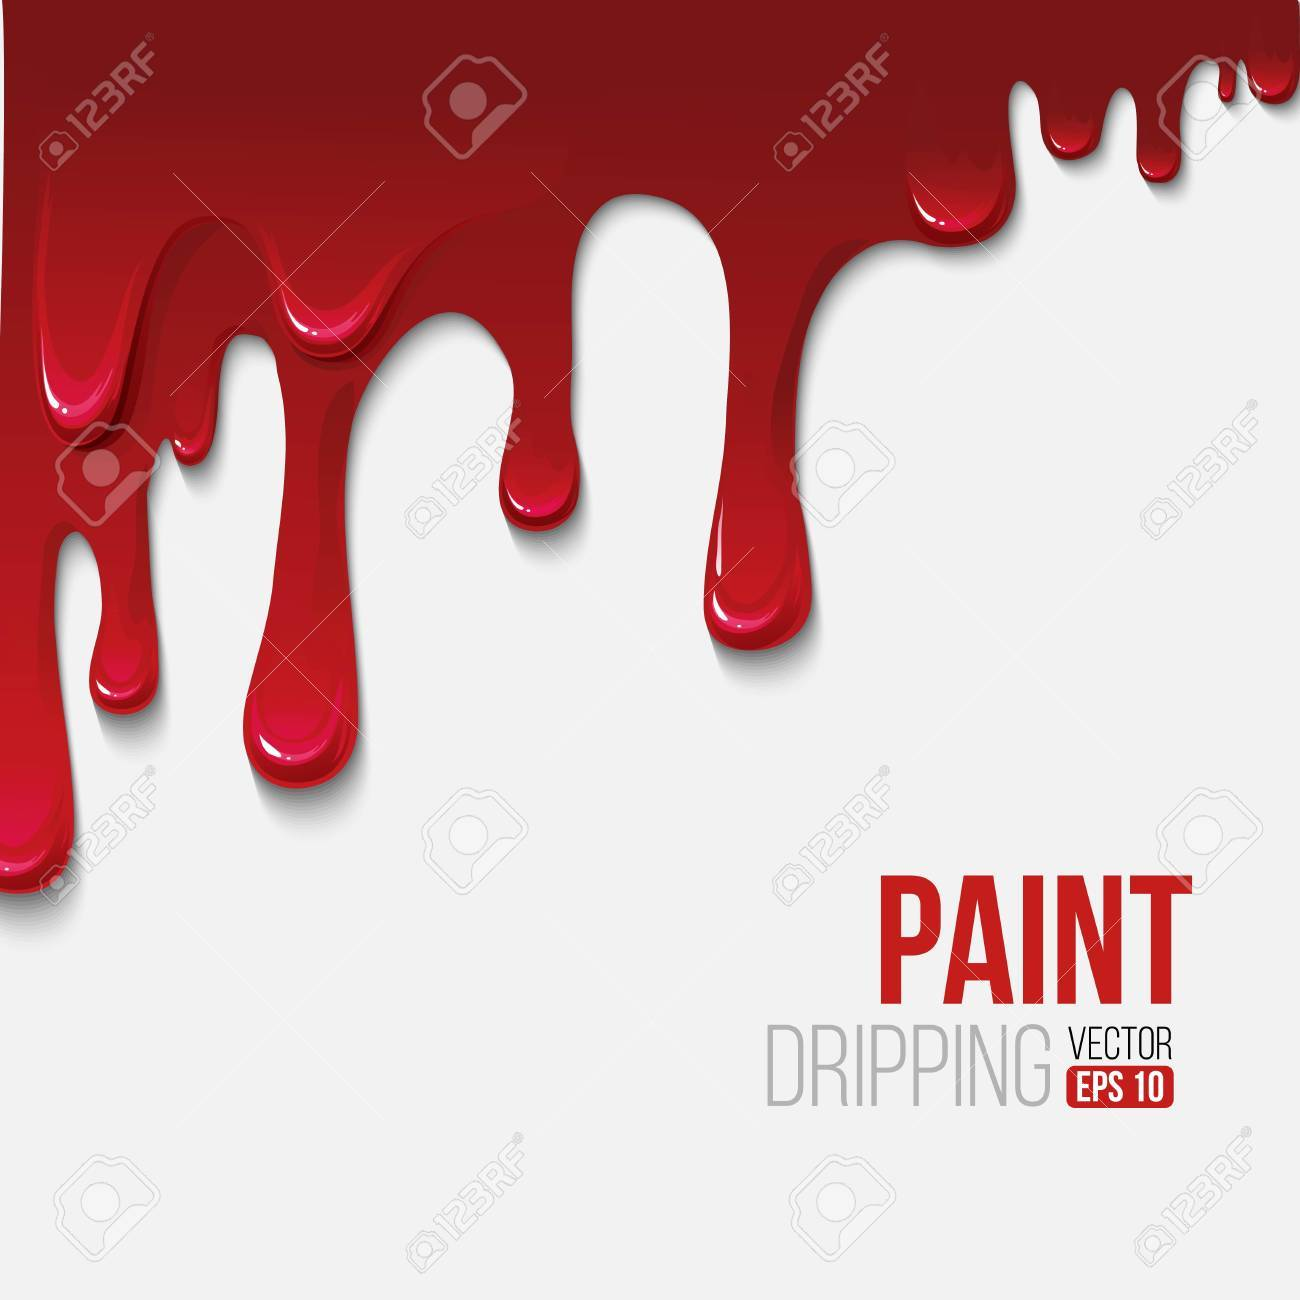 Paint colorful dripping background, vector illustration - 40862866